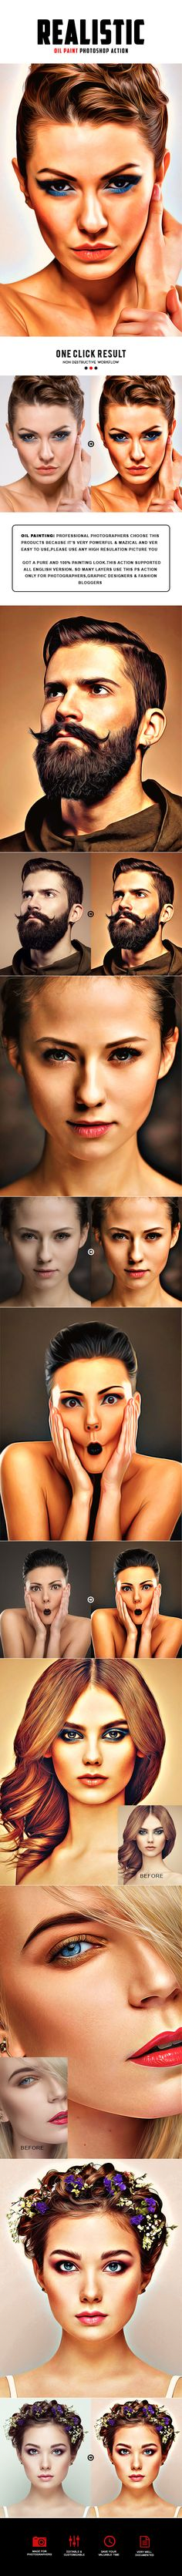 Realistic Oil Painting Photoshop Action - Photo Effects Actions Download here: https://graphicriver.net/item/realistic-oil-painting-photoshop-action/19995363?ref=classicdesignp